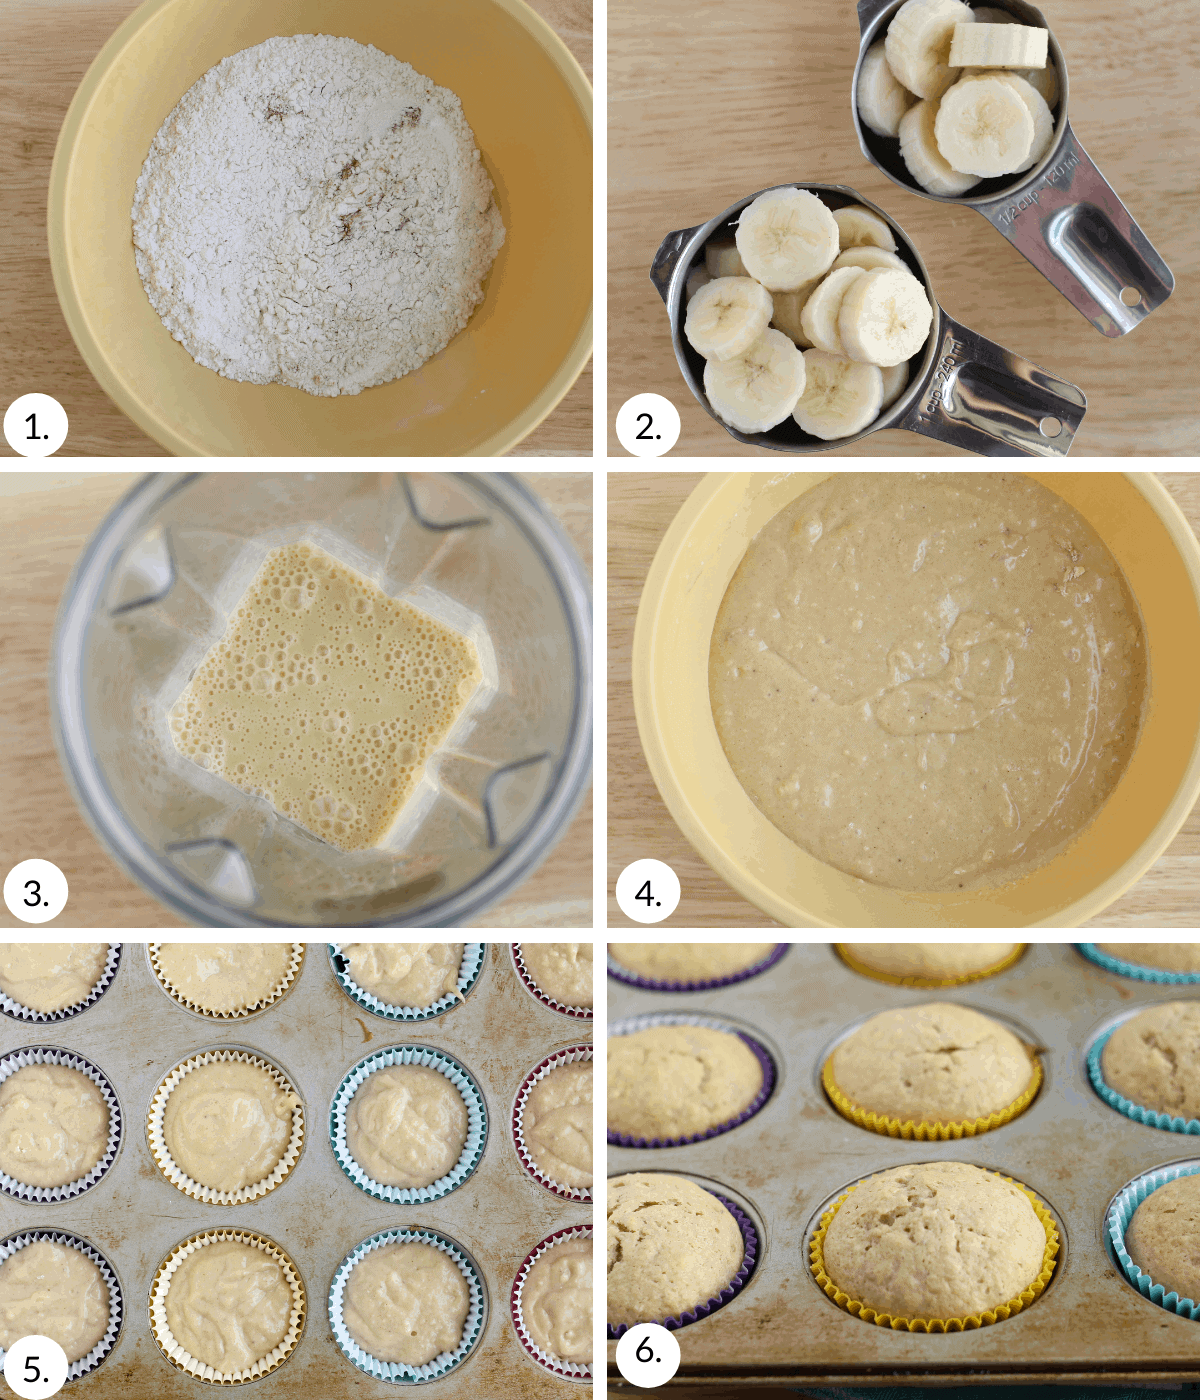 how to make banana cupcakes step by step